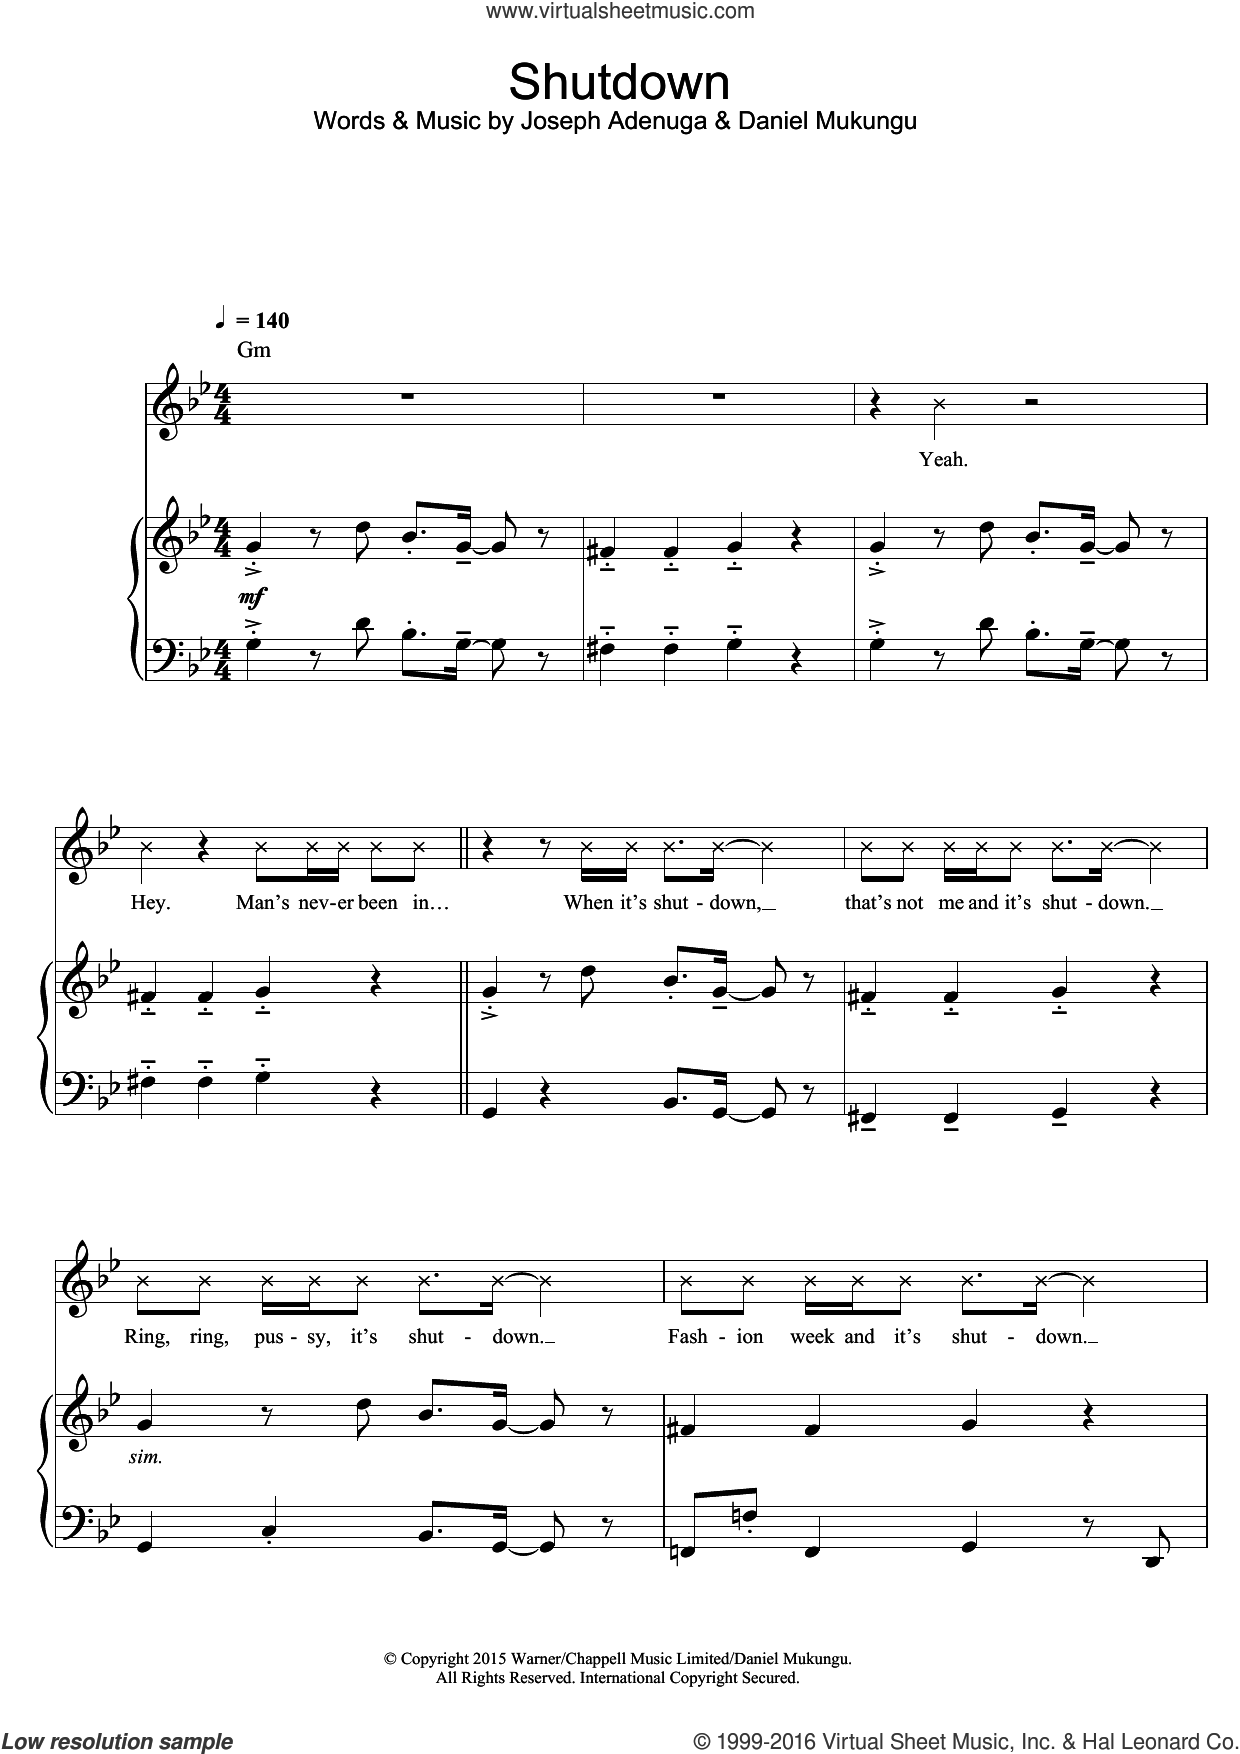 Shutdown sheet music for voice, piano or guitar by Skepta, Daniel Mukungu and Joseph Adenuga, intermediate skill level